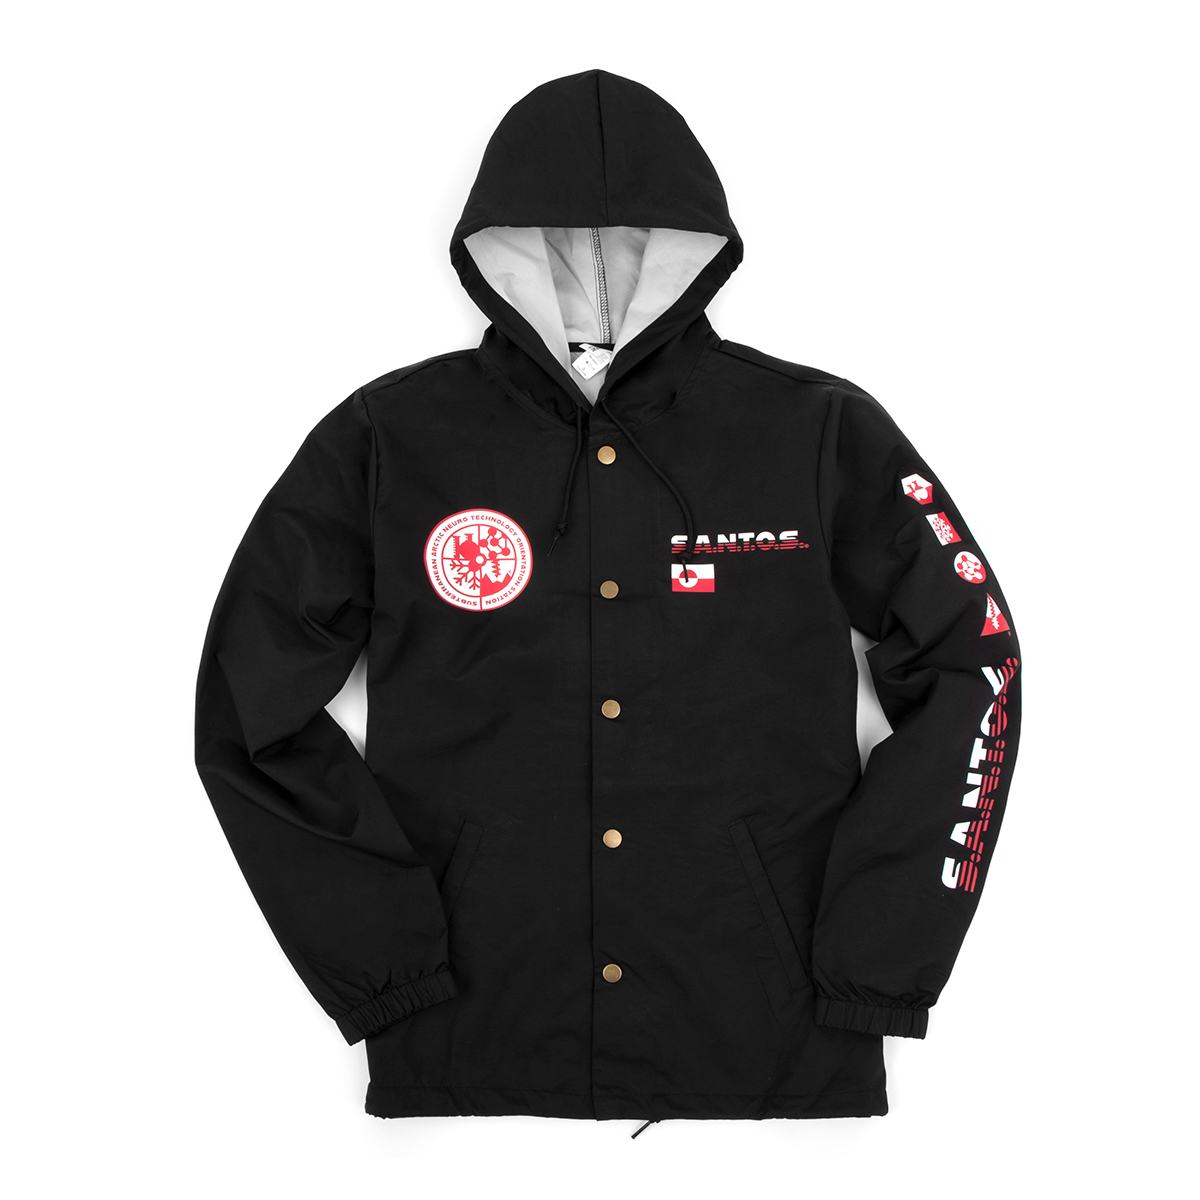 S.A.N.T.O.S. Hooded Crew Jacket on Black